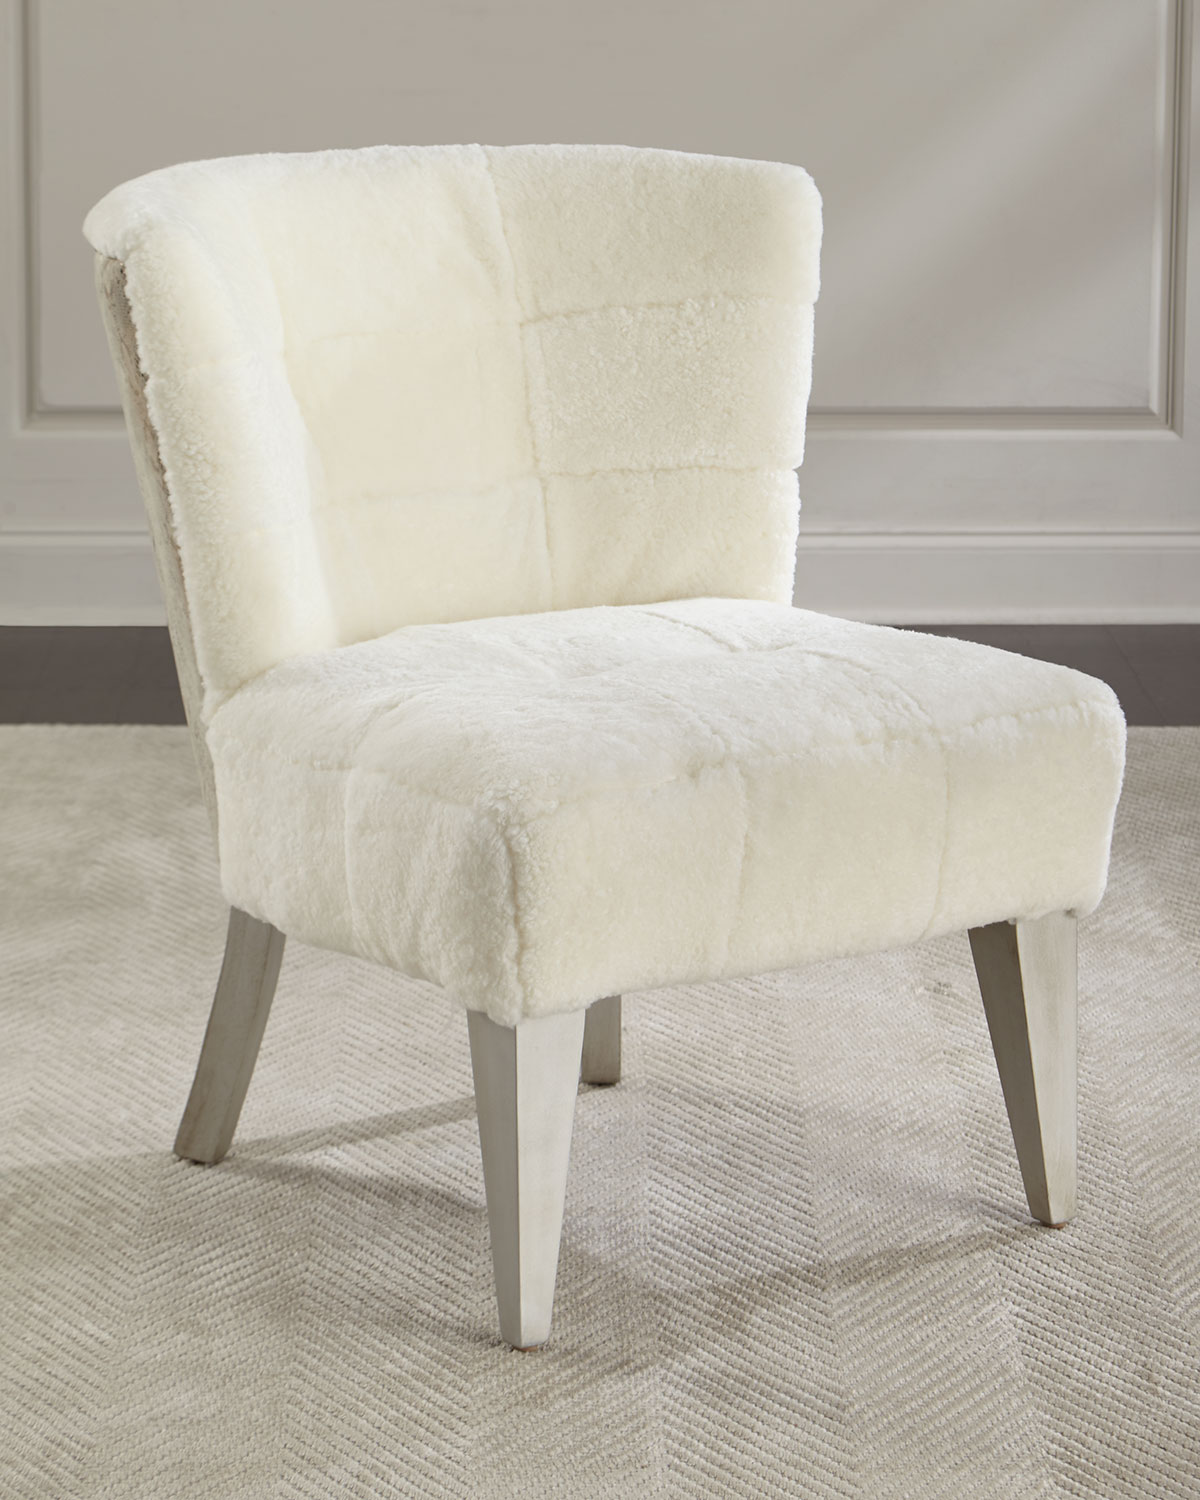 accent chairs under 50 dollars wrought iron chair cushions outdoor massoud paulette shearling neiman marcus